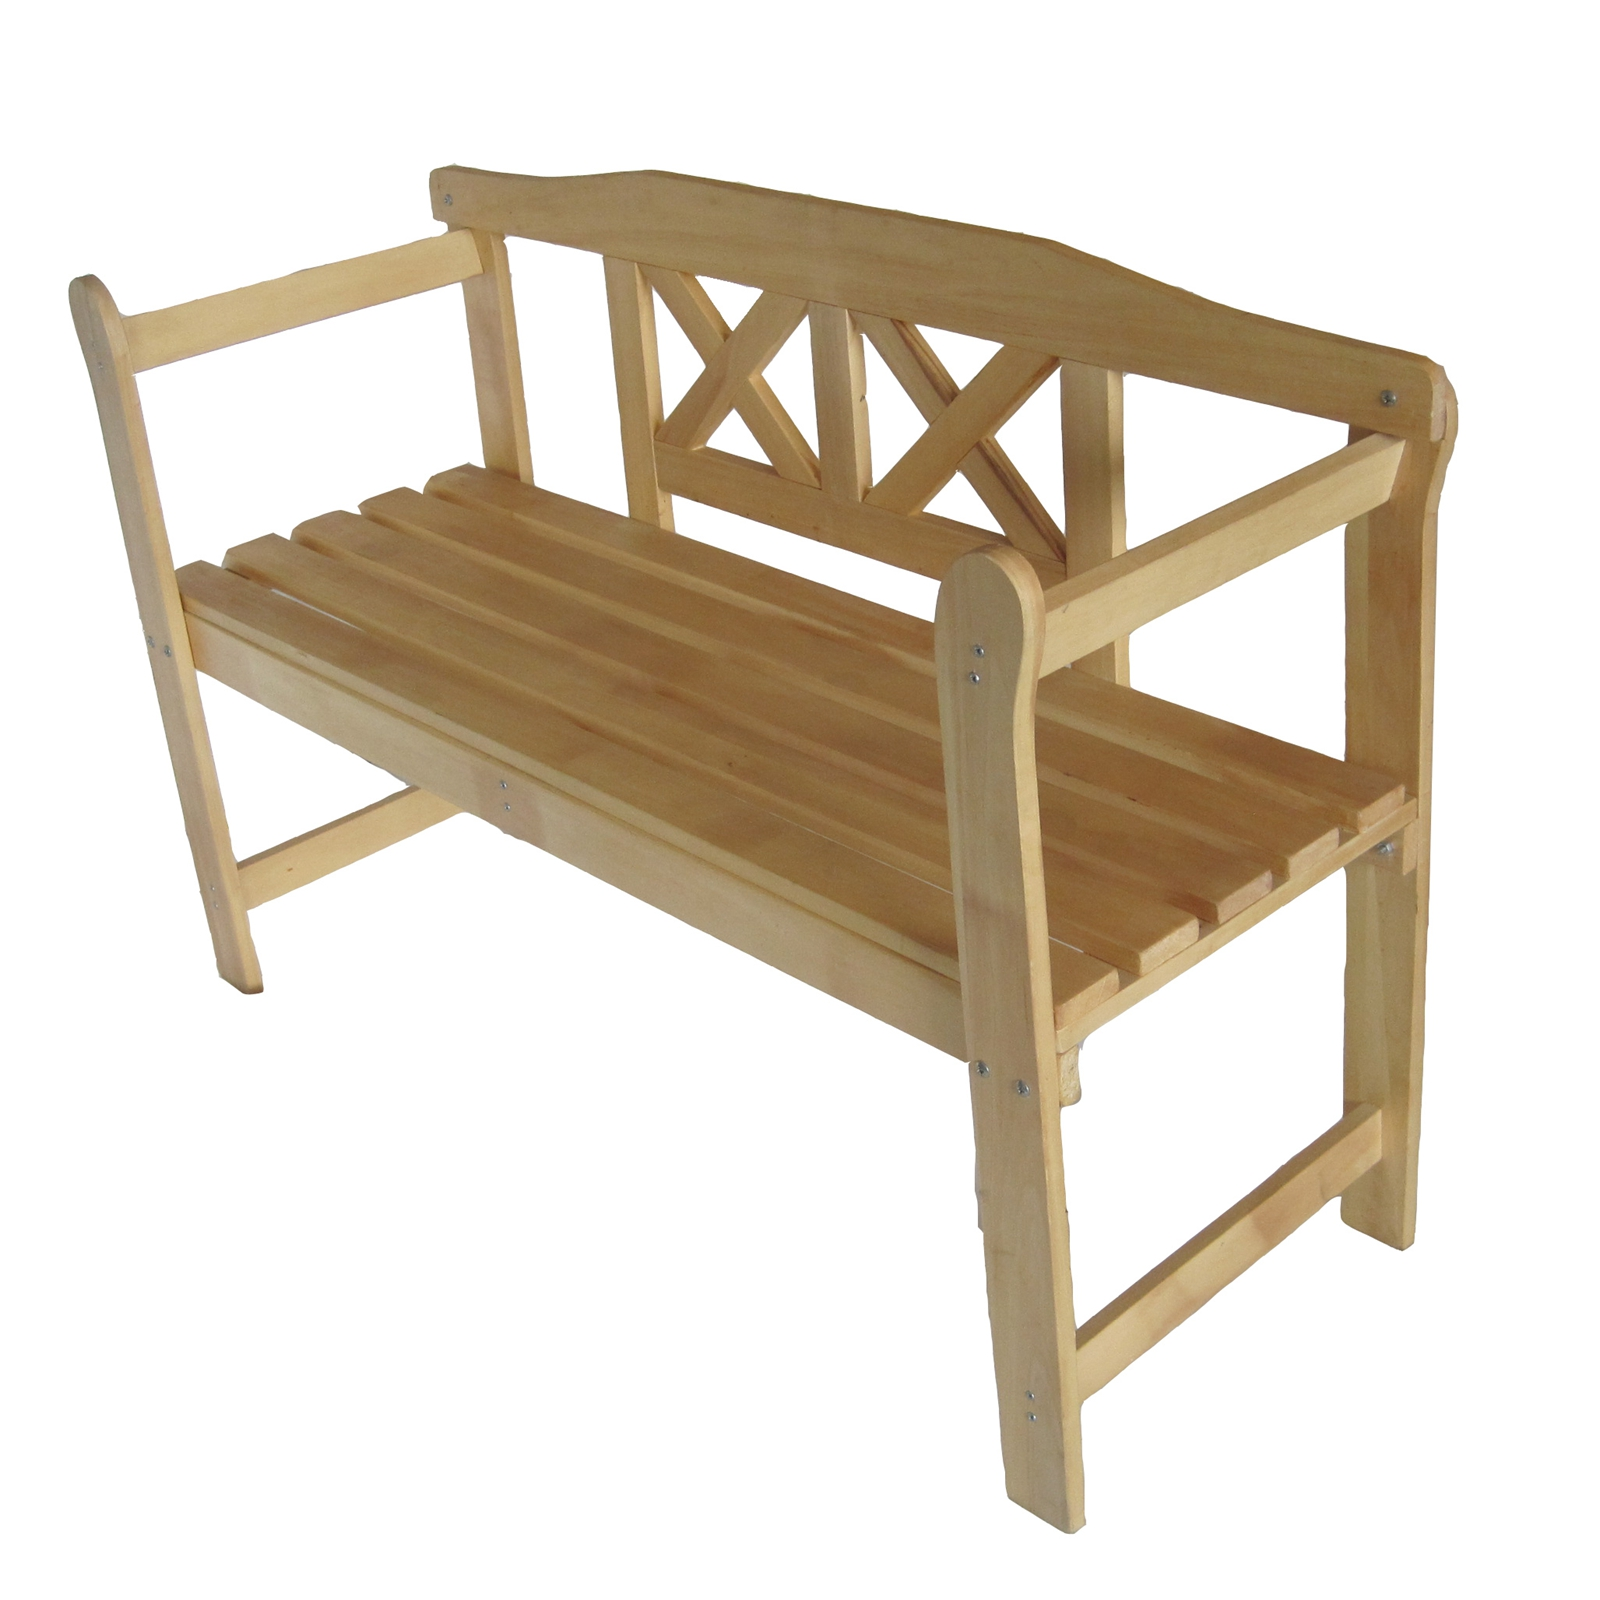 Outdoor Wooden Bench Seat 28 Images Outdoor Lounge Chair Wood Preservative Outdoor Bench